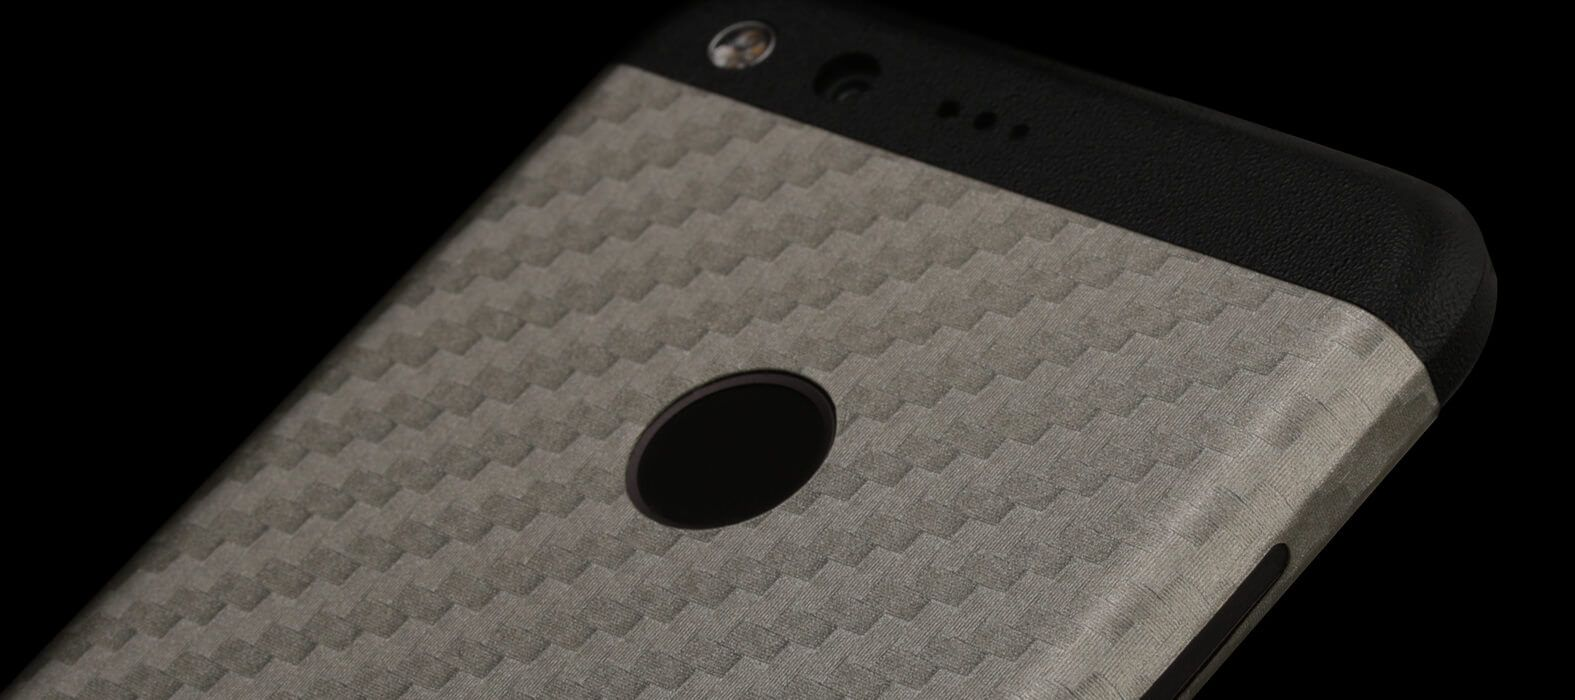 Pixel XL Wraps, Skins & Decals - Pewter Carbon